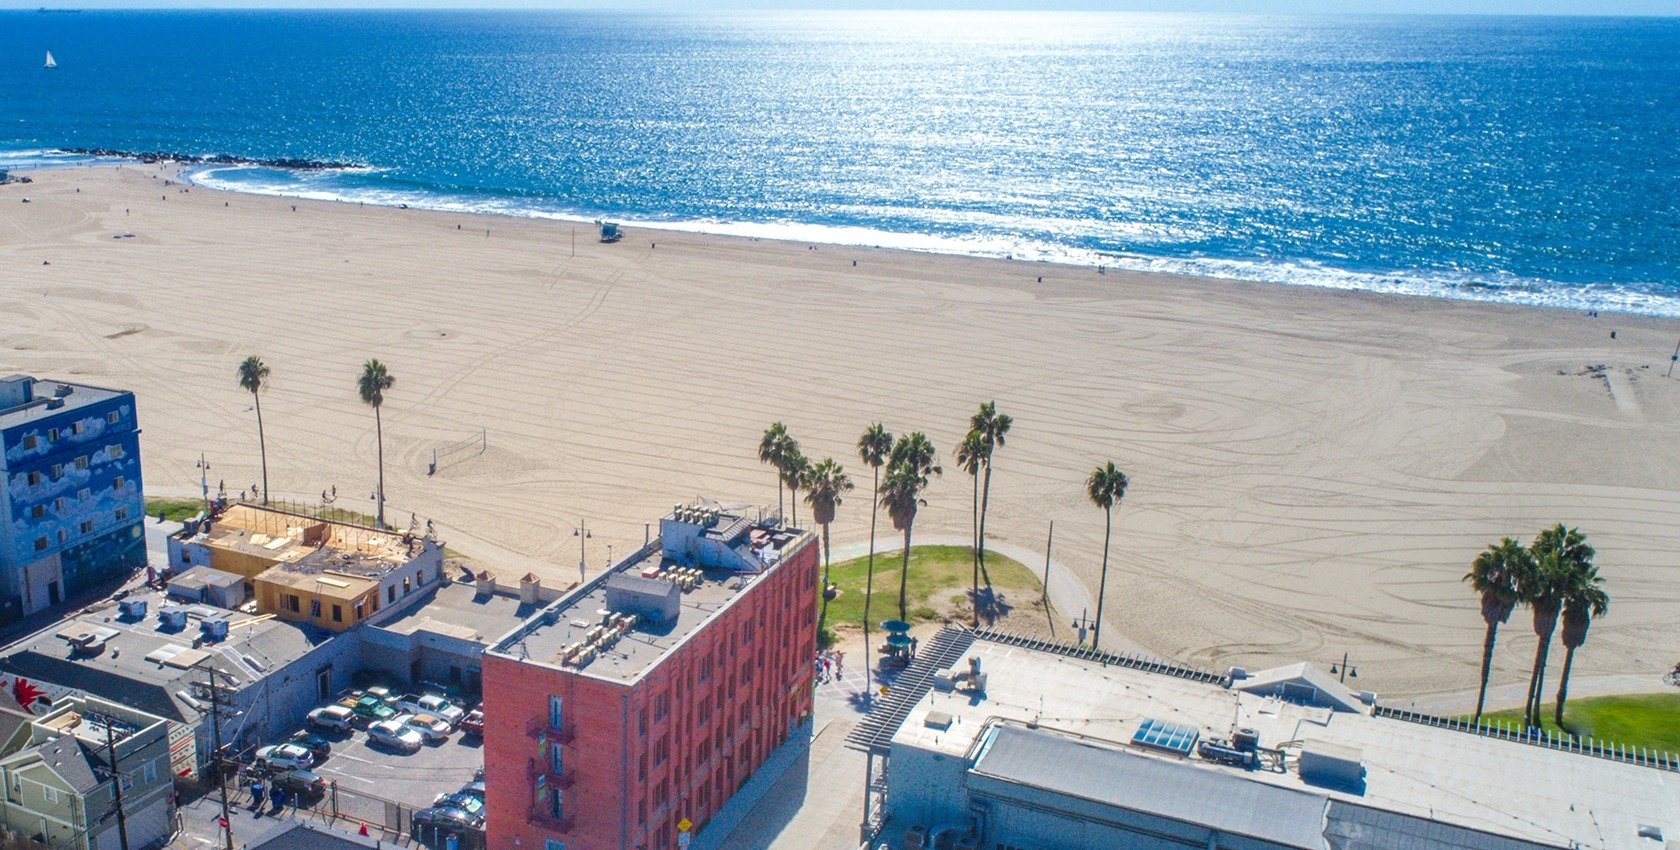 Aerial_view_of_venice_beach